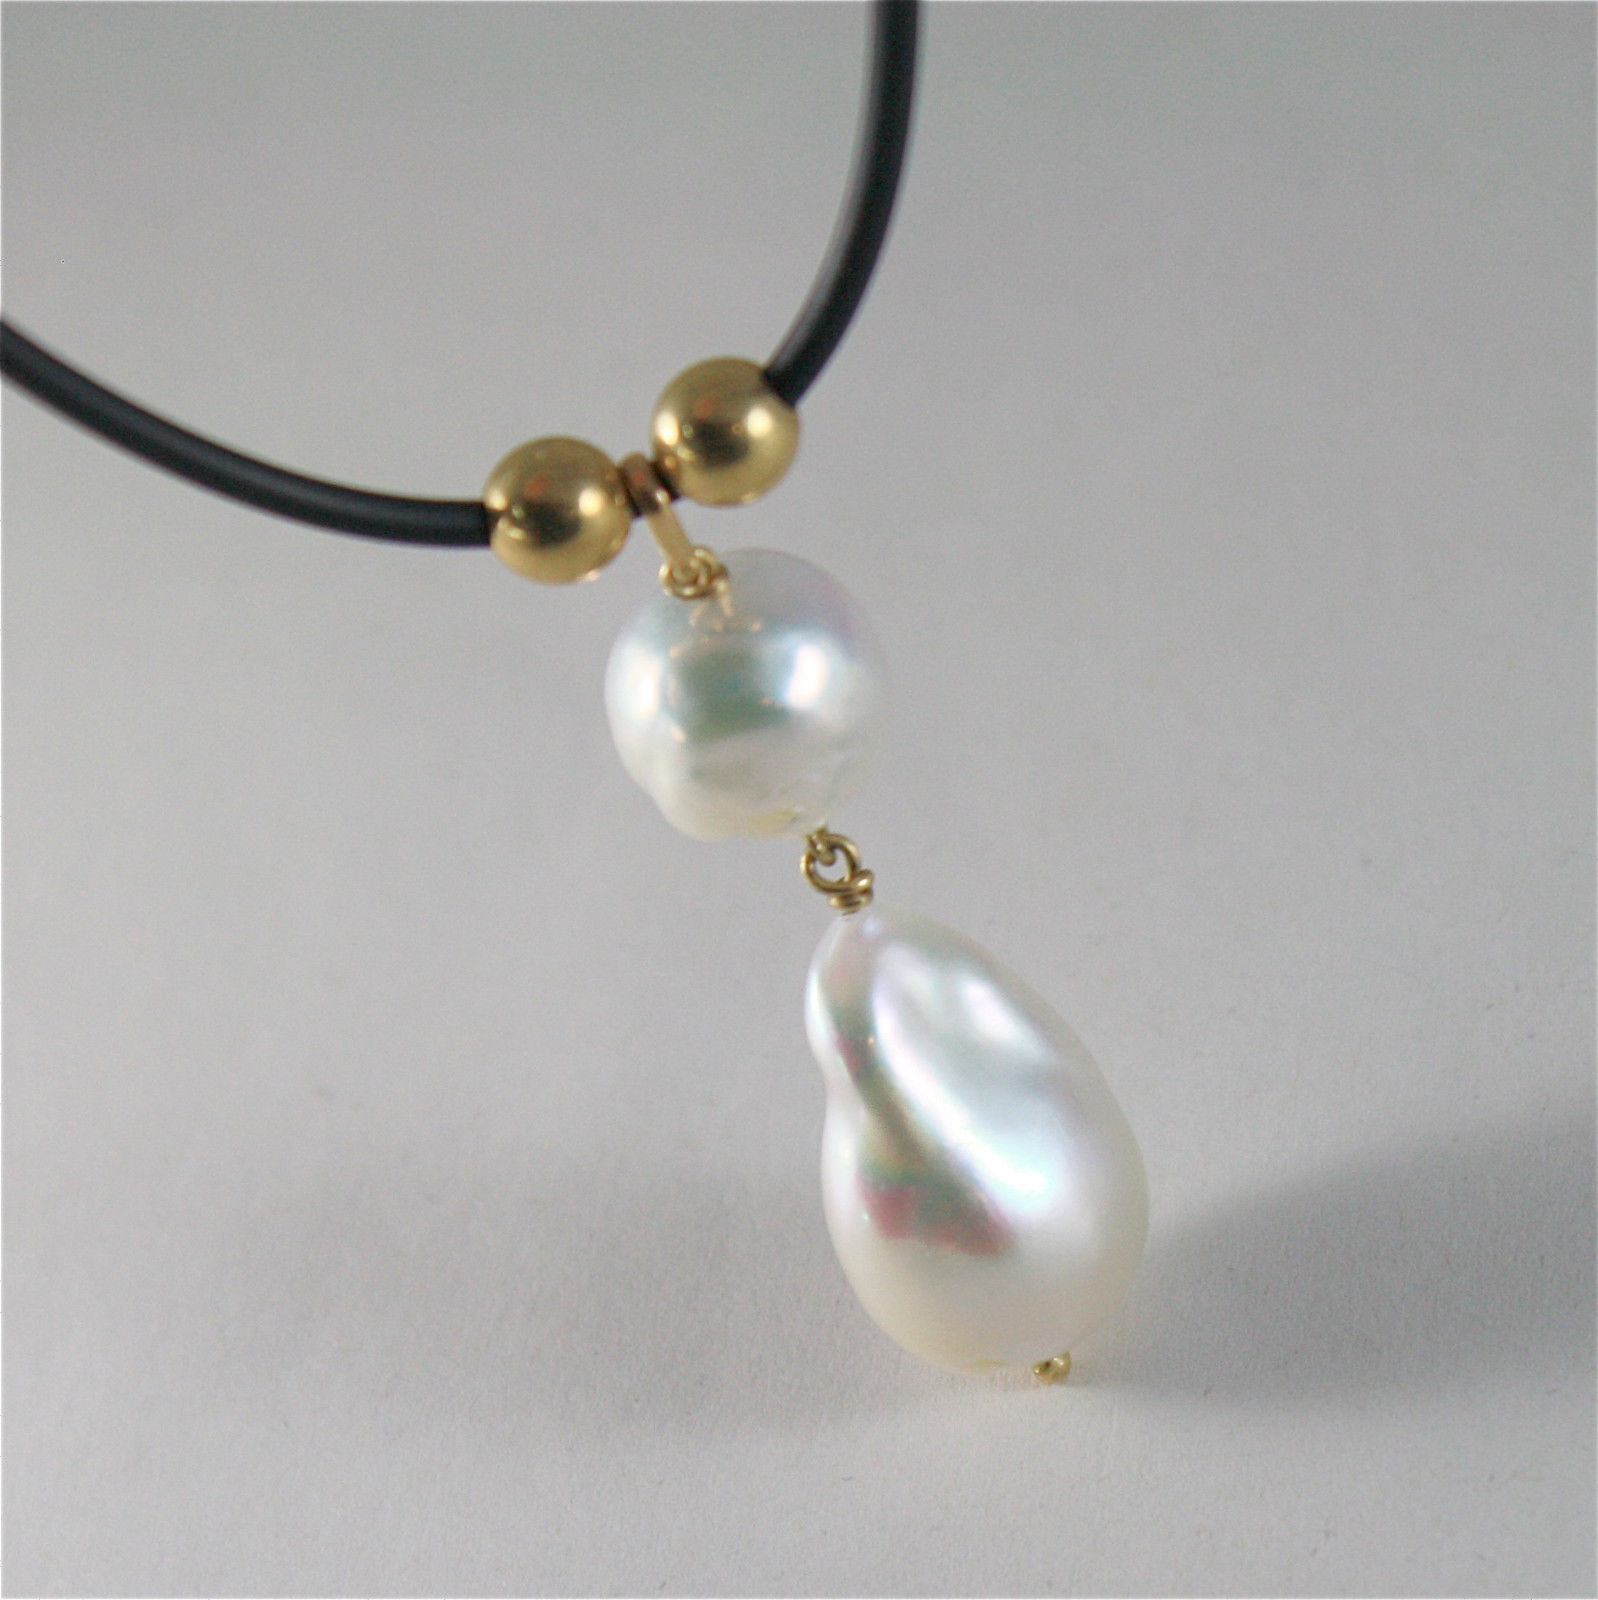 SOLID 18K YELLOW GOLD & SILICON NECKLACE WITH BAROQUE & DROP PEARL MADE IN ITALY